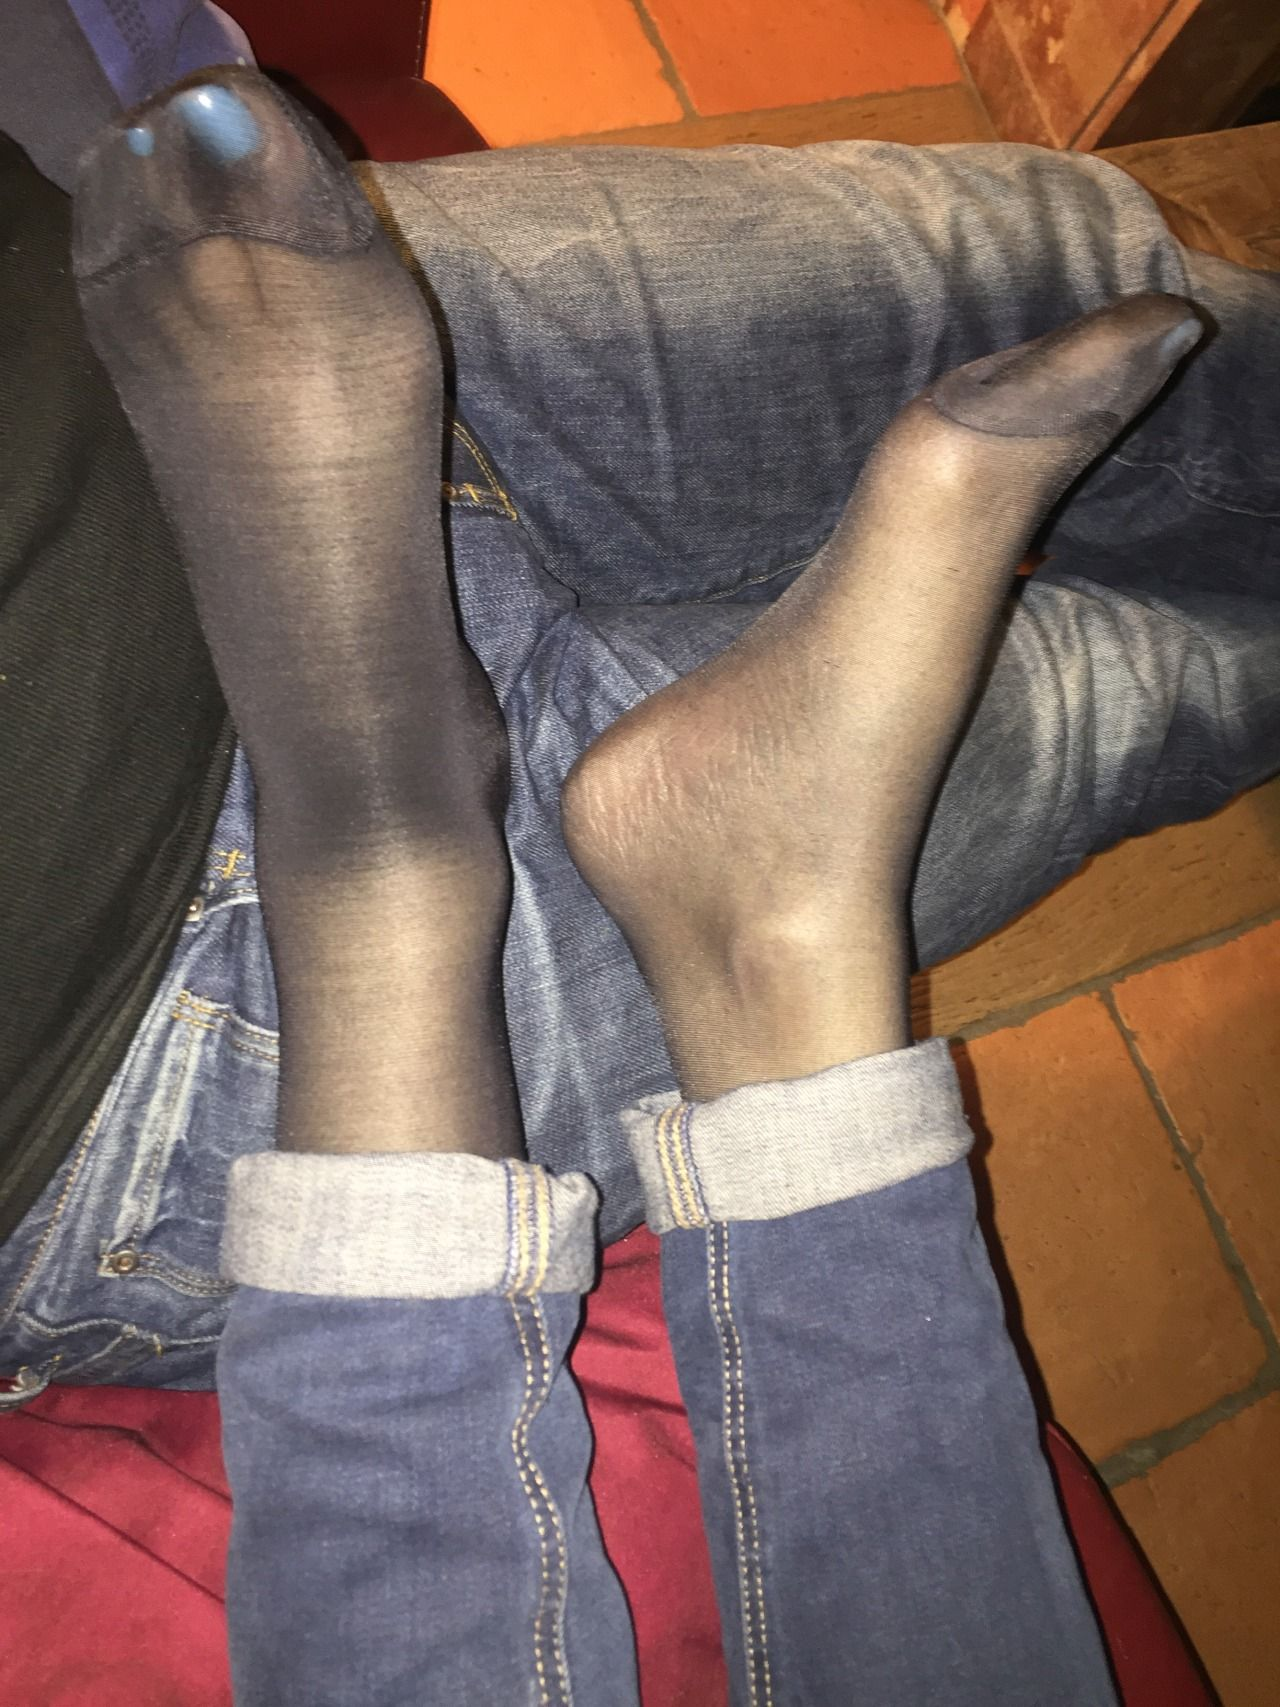 my wife in nylons